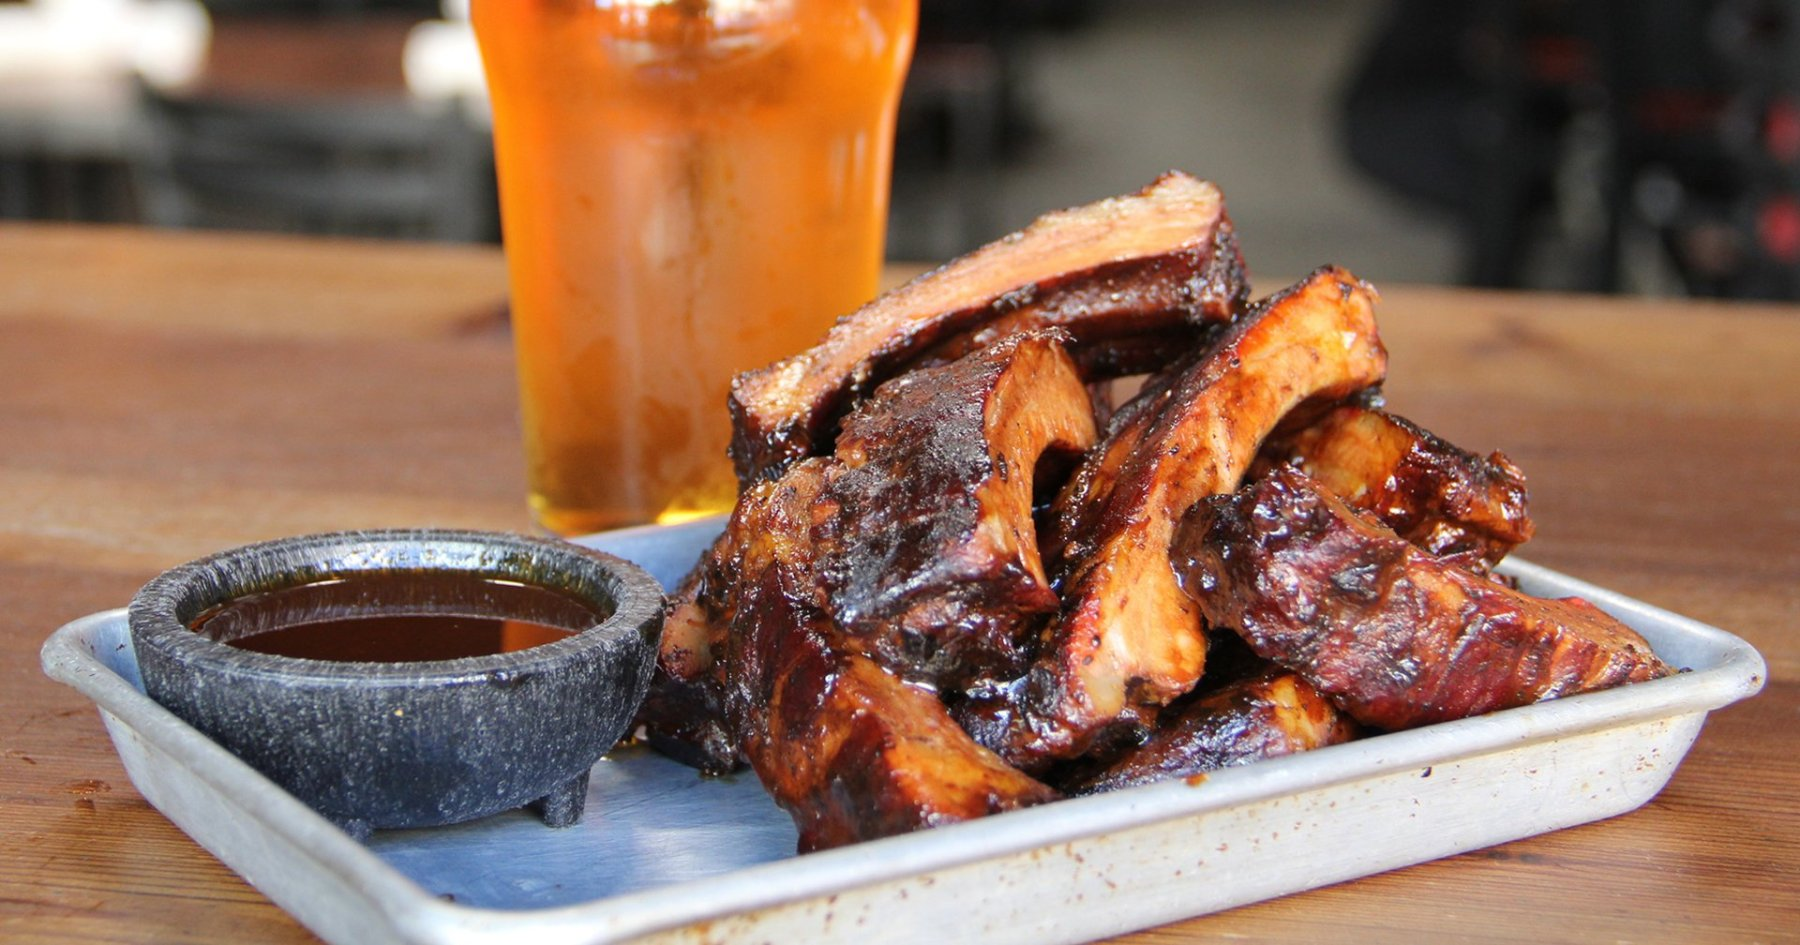 Our 5 Top Picks for the Best Barbecue in Town